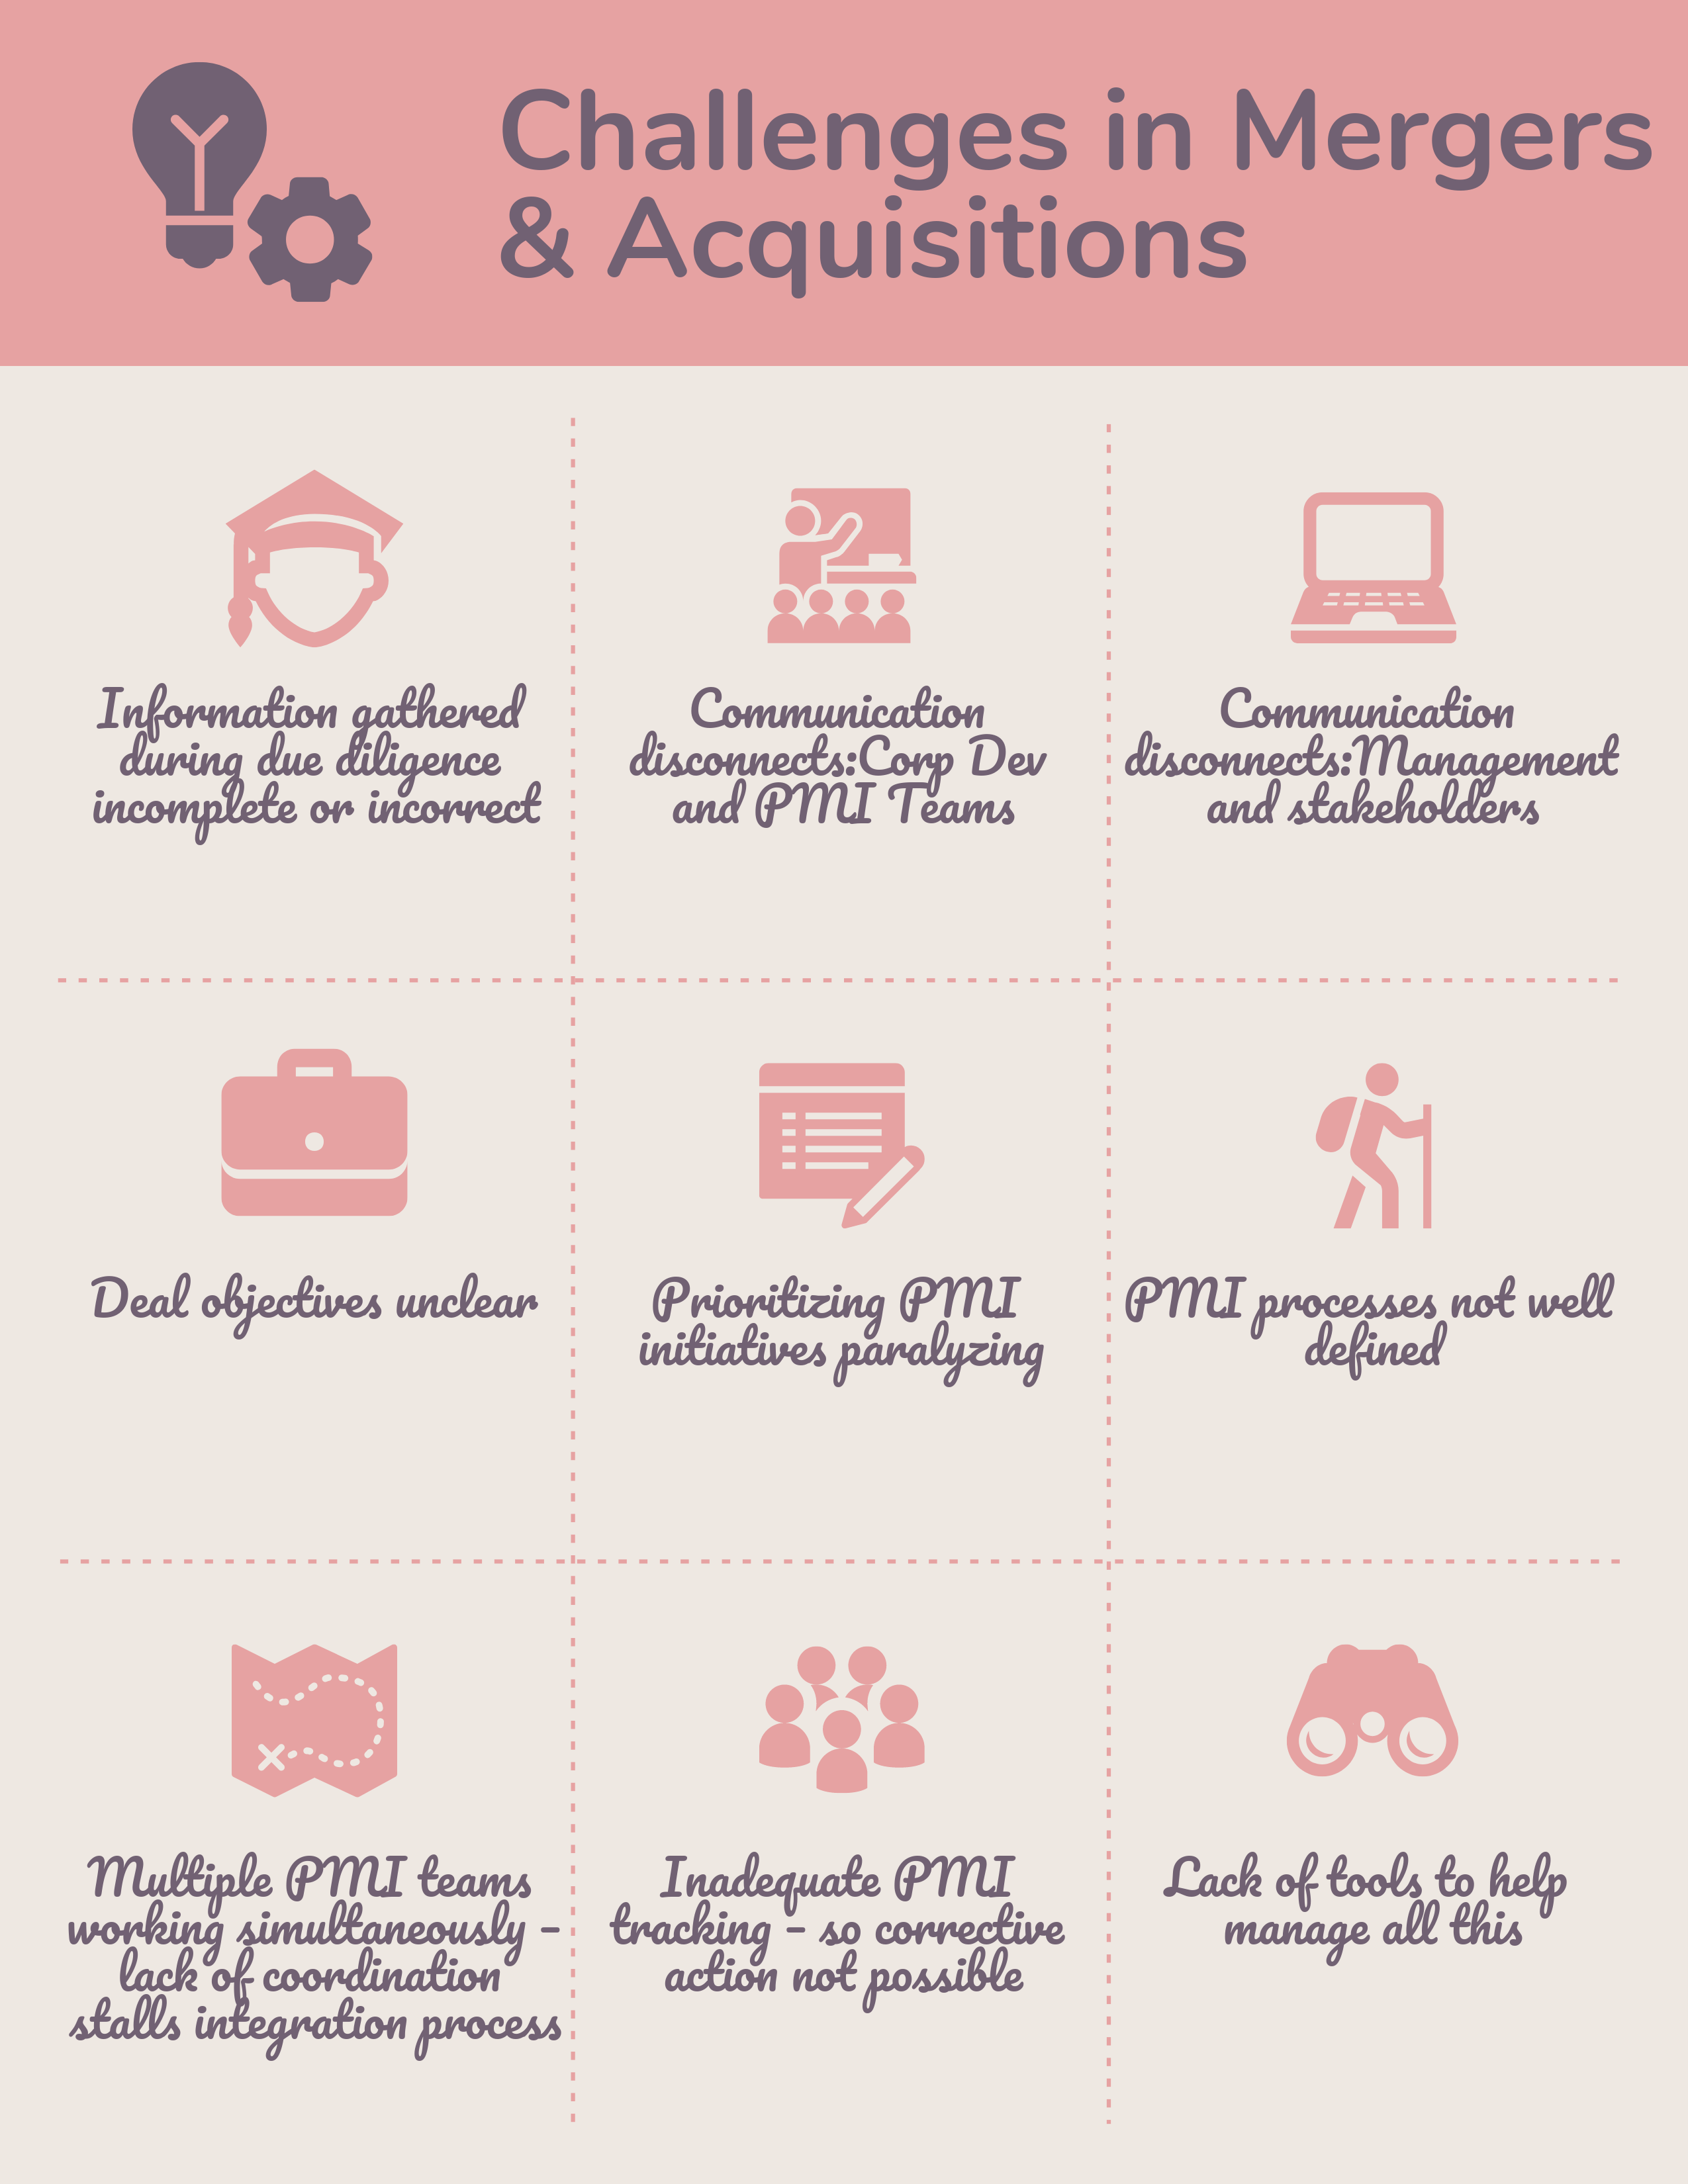 What are Challenges in Mergers & Acquisitions